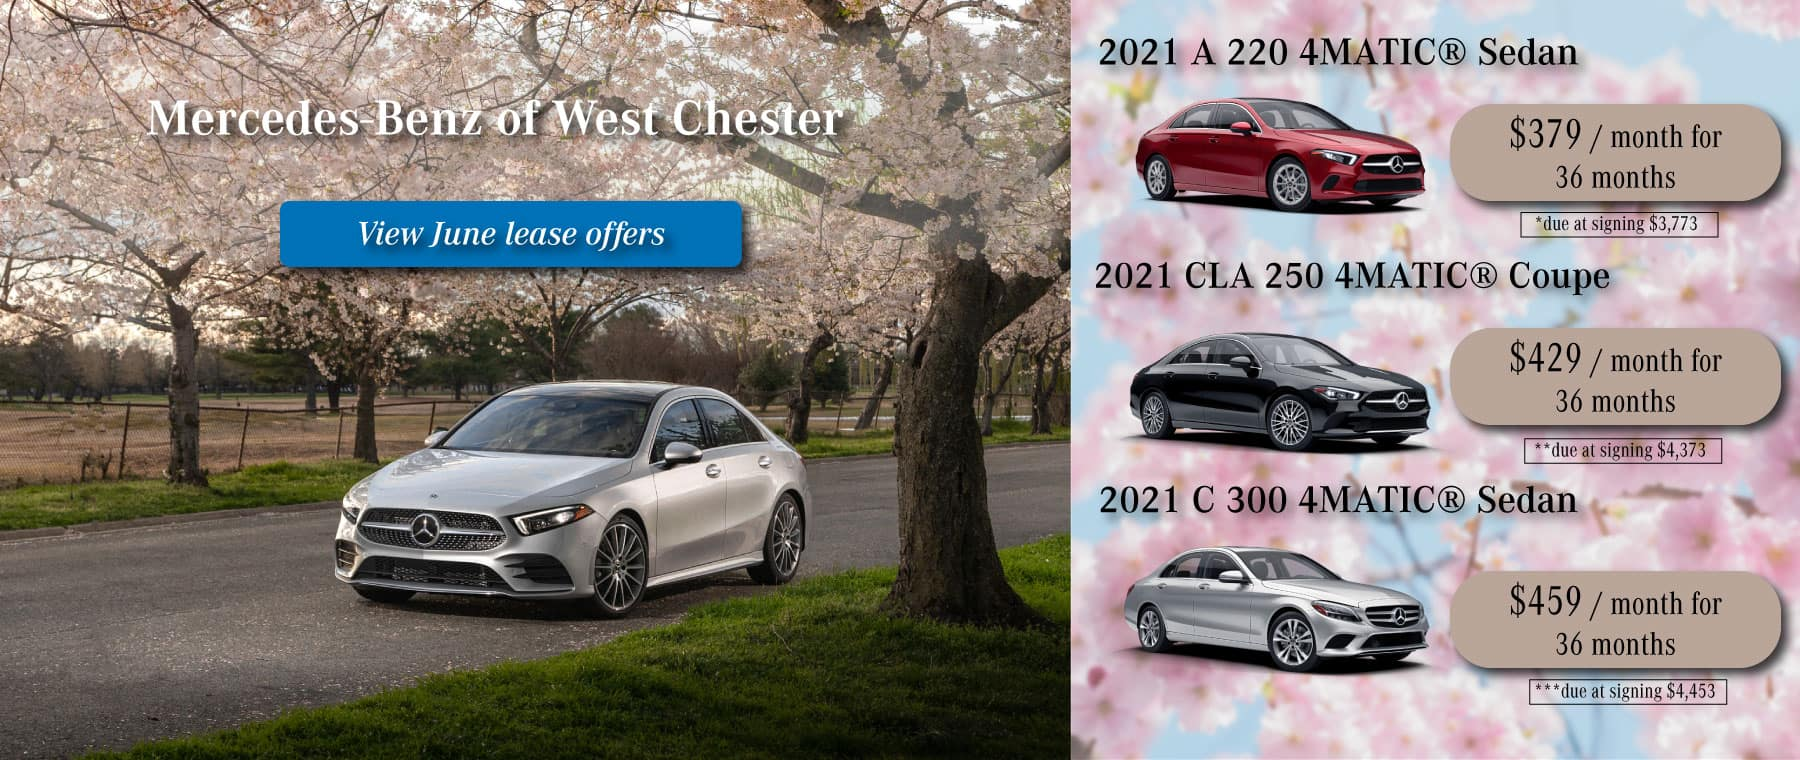 mercedes-benz of west chester 2021 new lease special